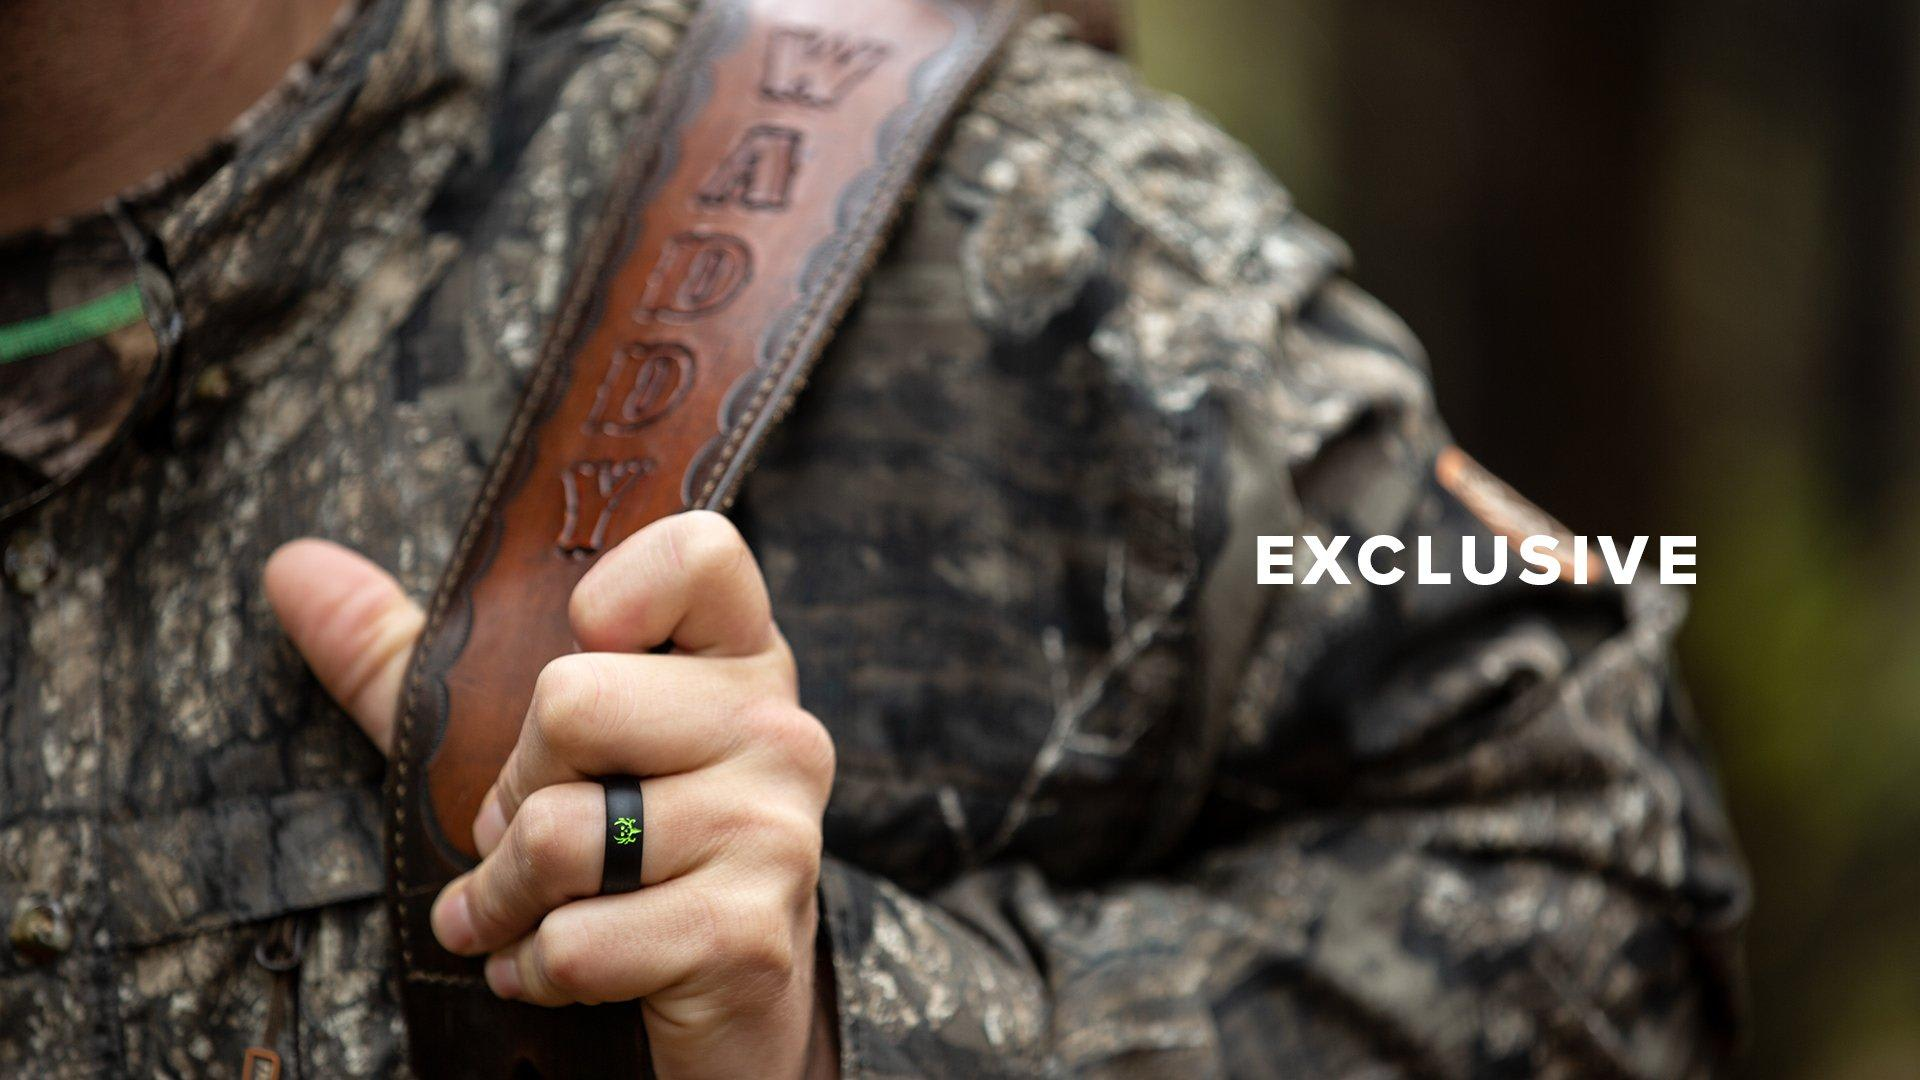 Excusive, man in camo holding a leather gun strap